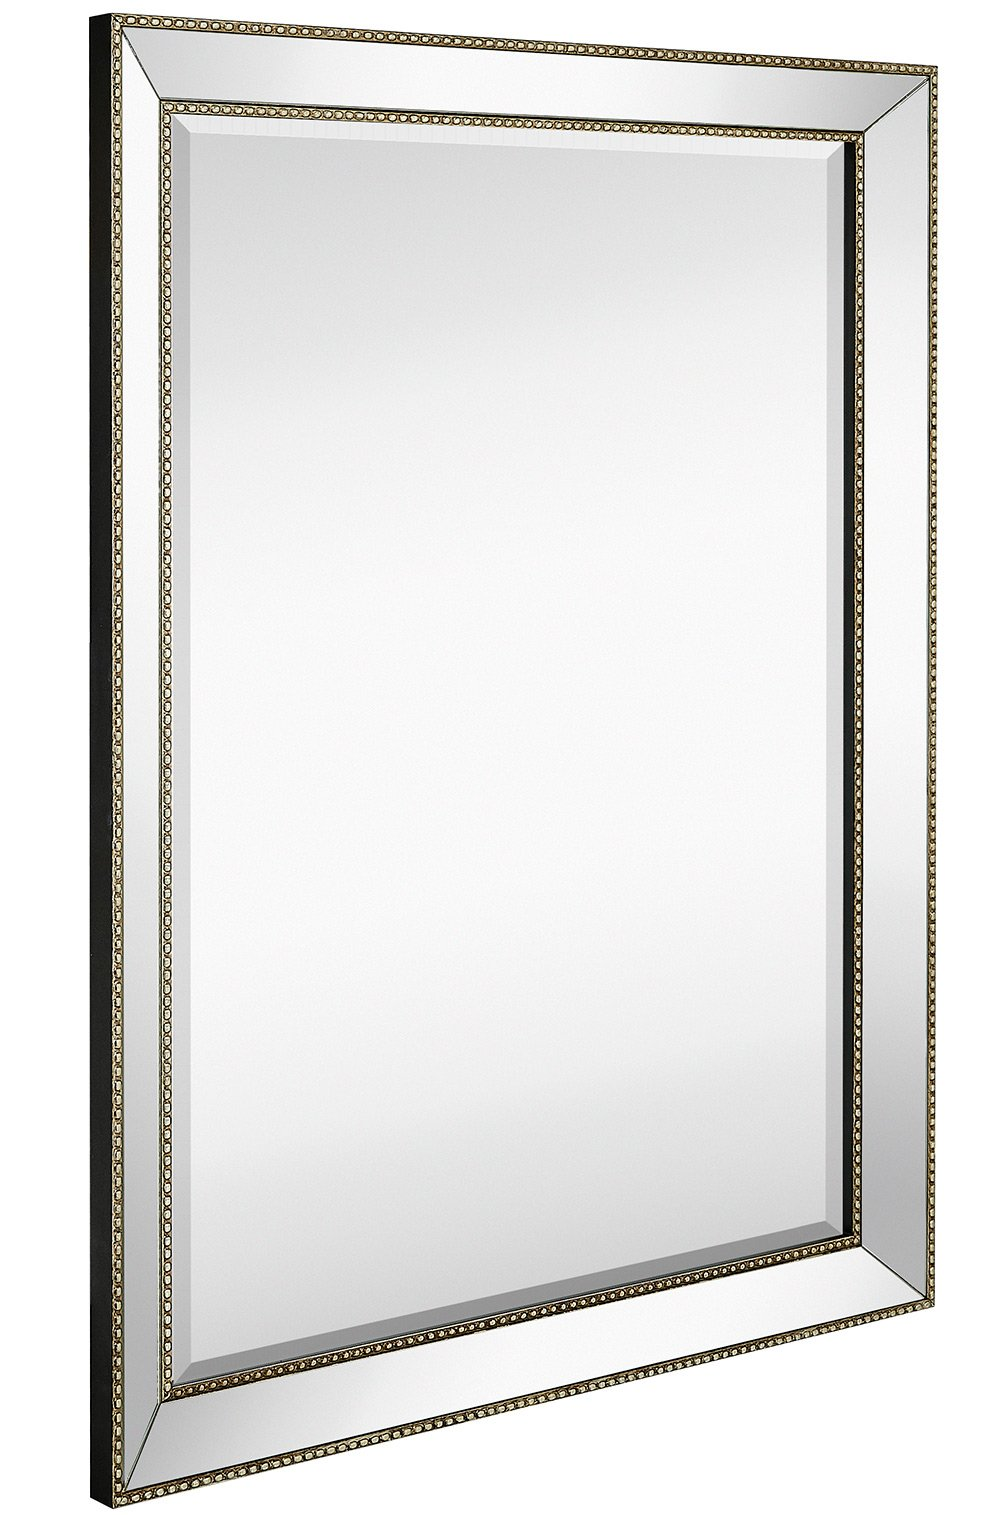 Large Framed Wall Mirror with Angled Beveled Mirror Frame and Beaded Accents | Premium Silver Backed Glass Panel | Vanity, Bedroom, or Bathroom | Mirrored Rectangle Horizontal or Vertical (30''x40'')